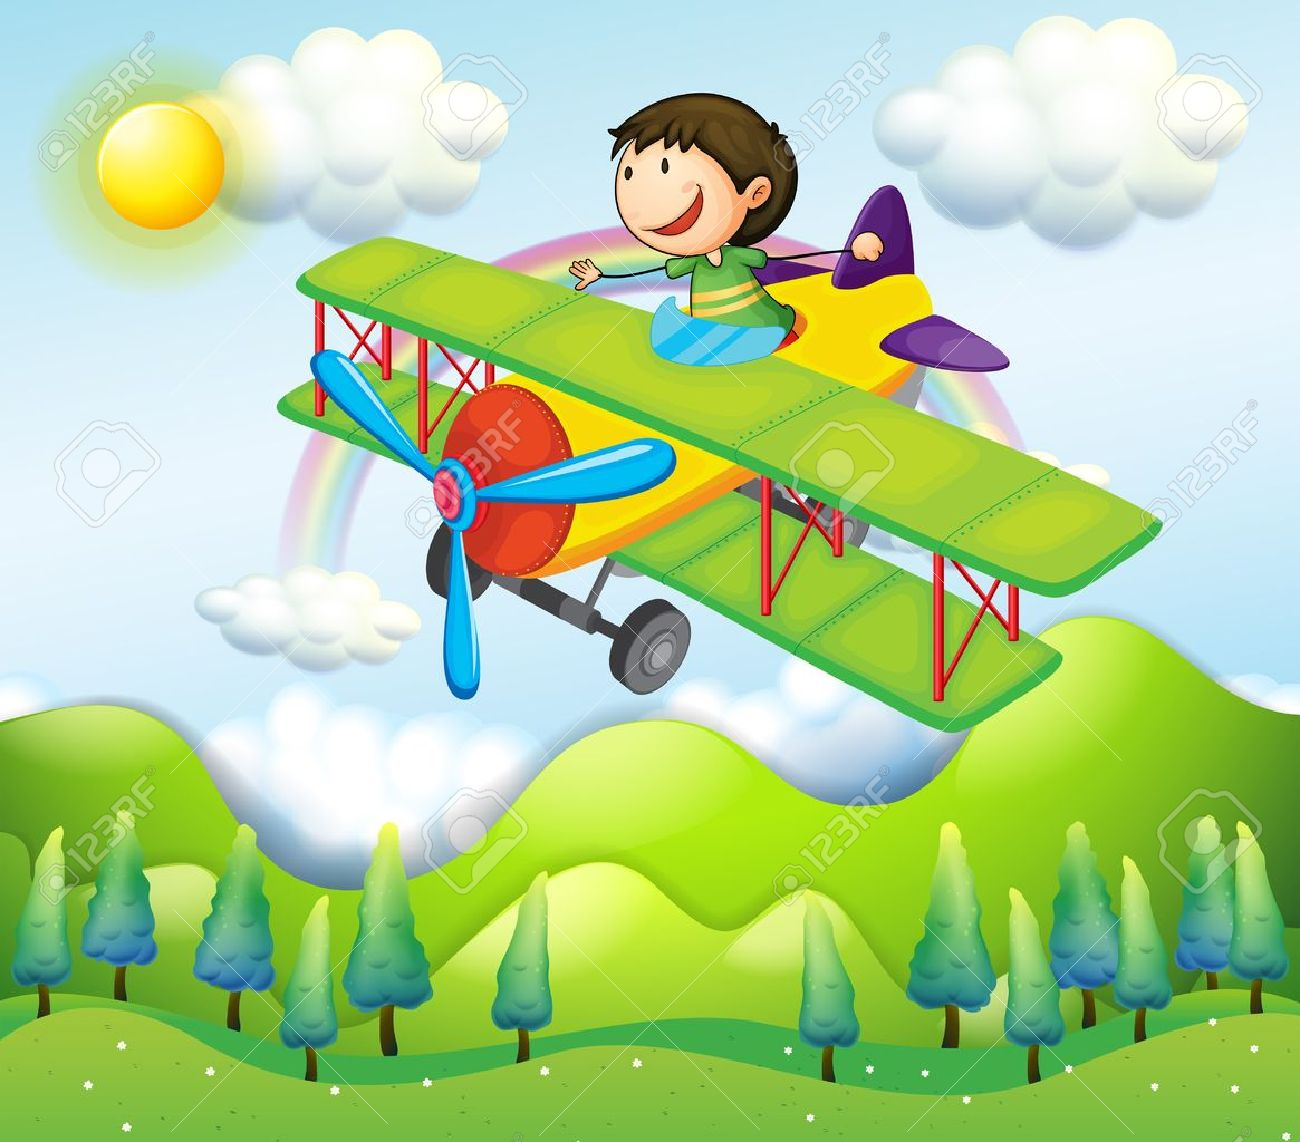 Illustration of a young man riding in a colorful plane Stock Vector - 18981228